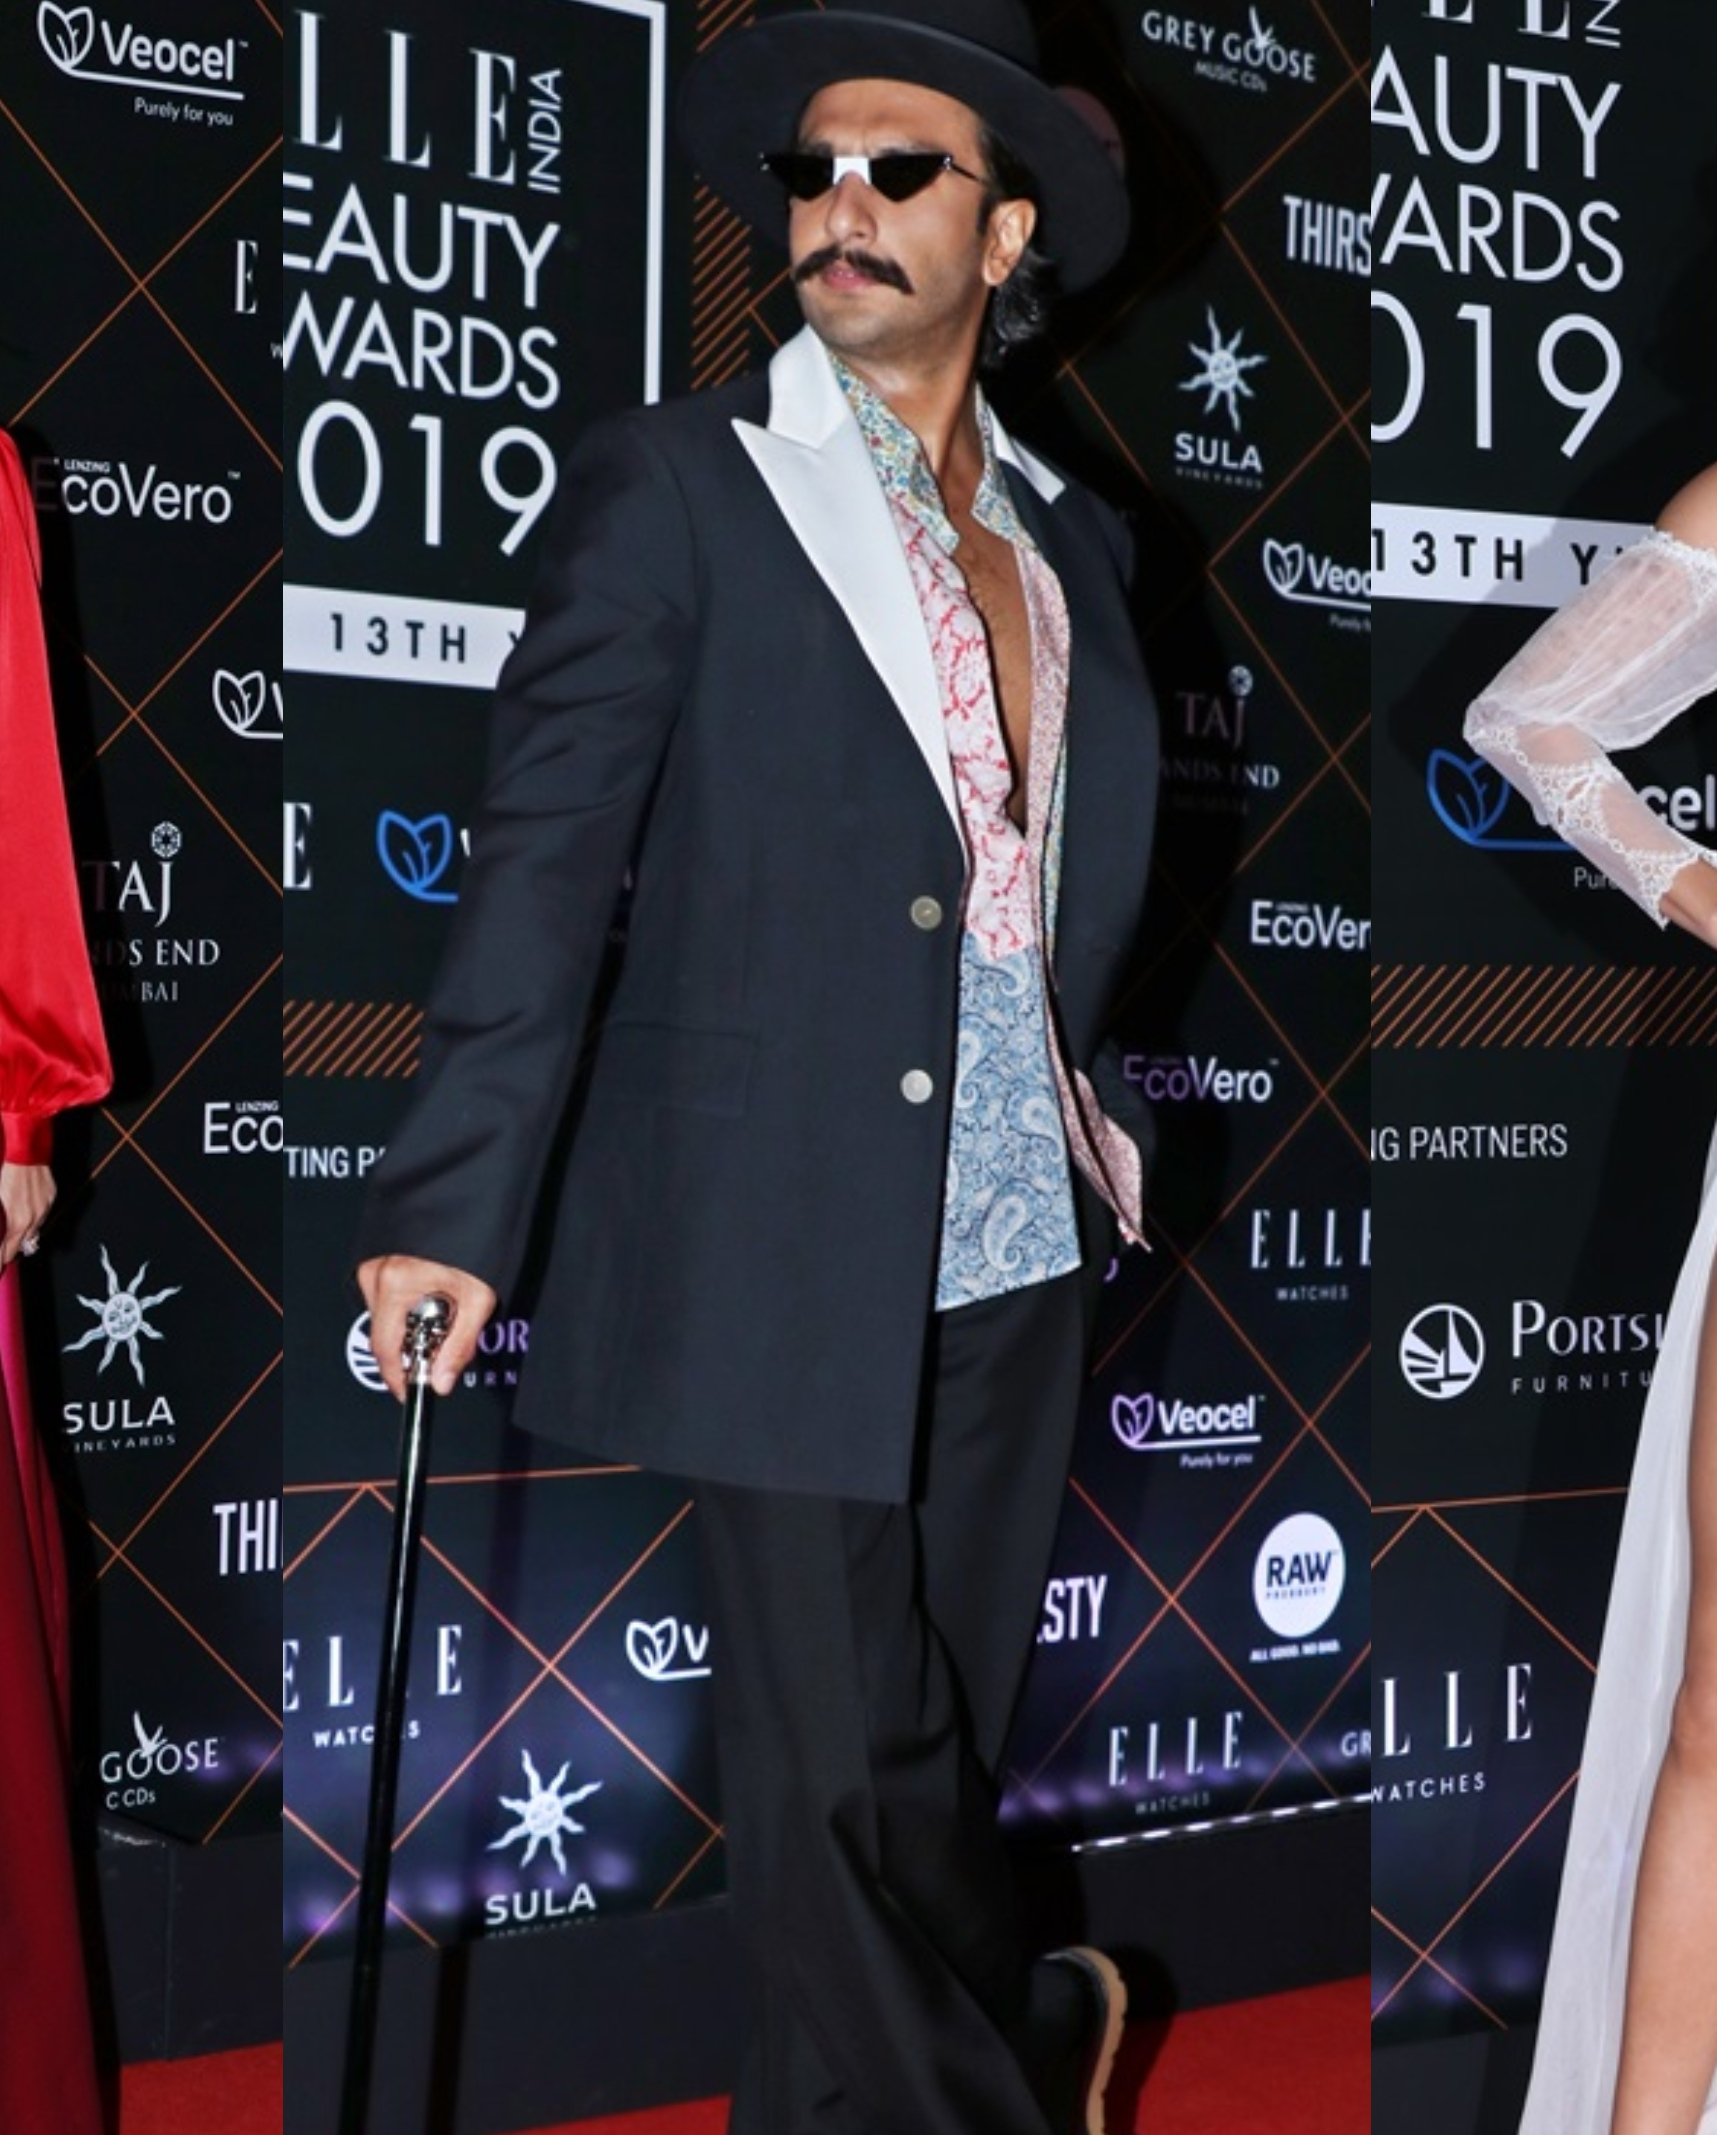 Elle Beauty Awards 2019: Kareena, Ranveer, Anushka sashay on red carpet